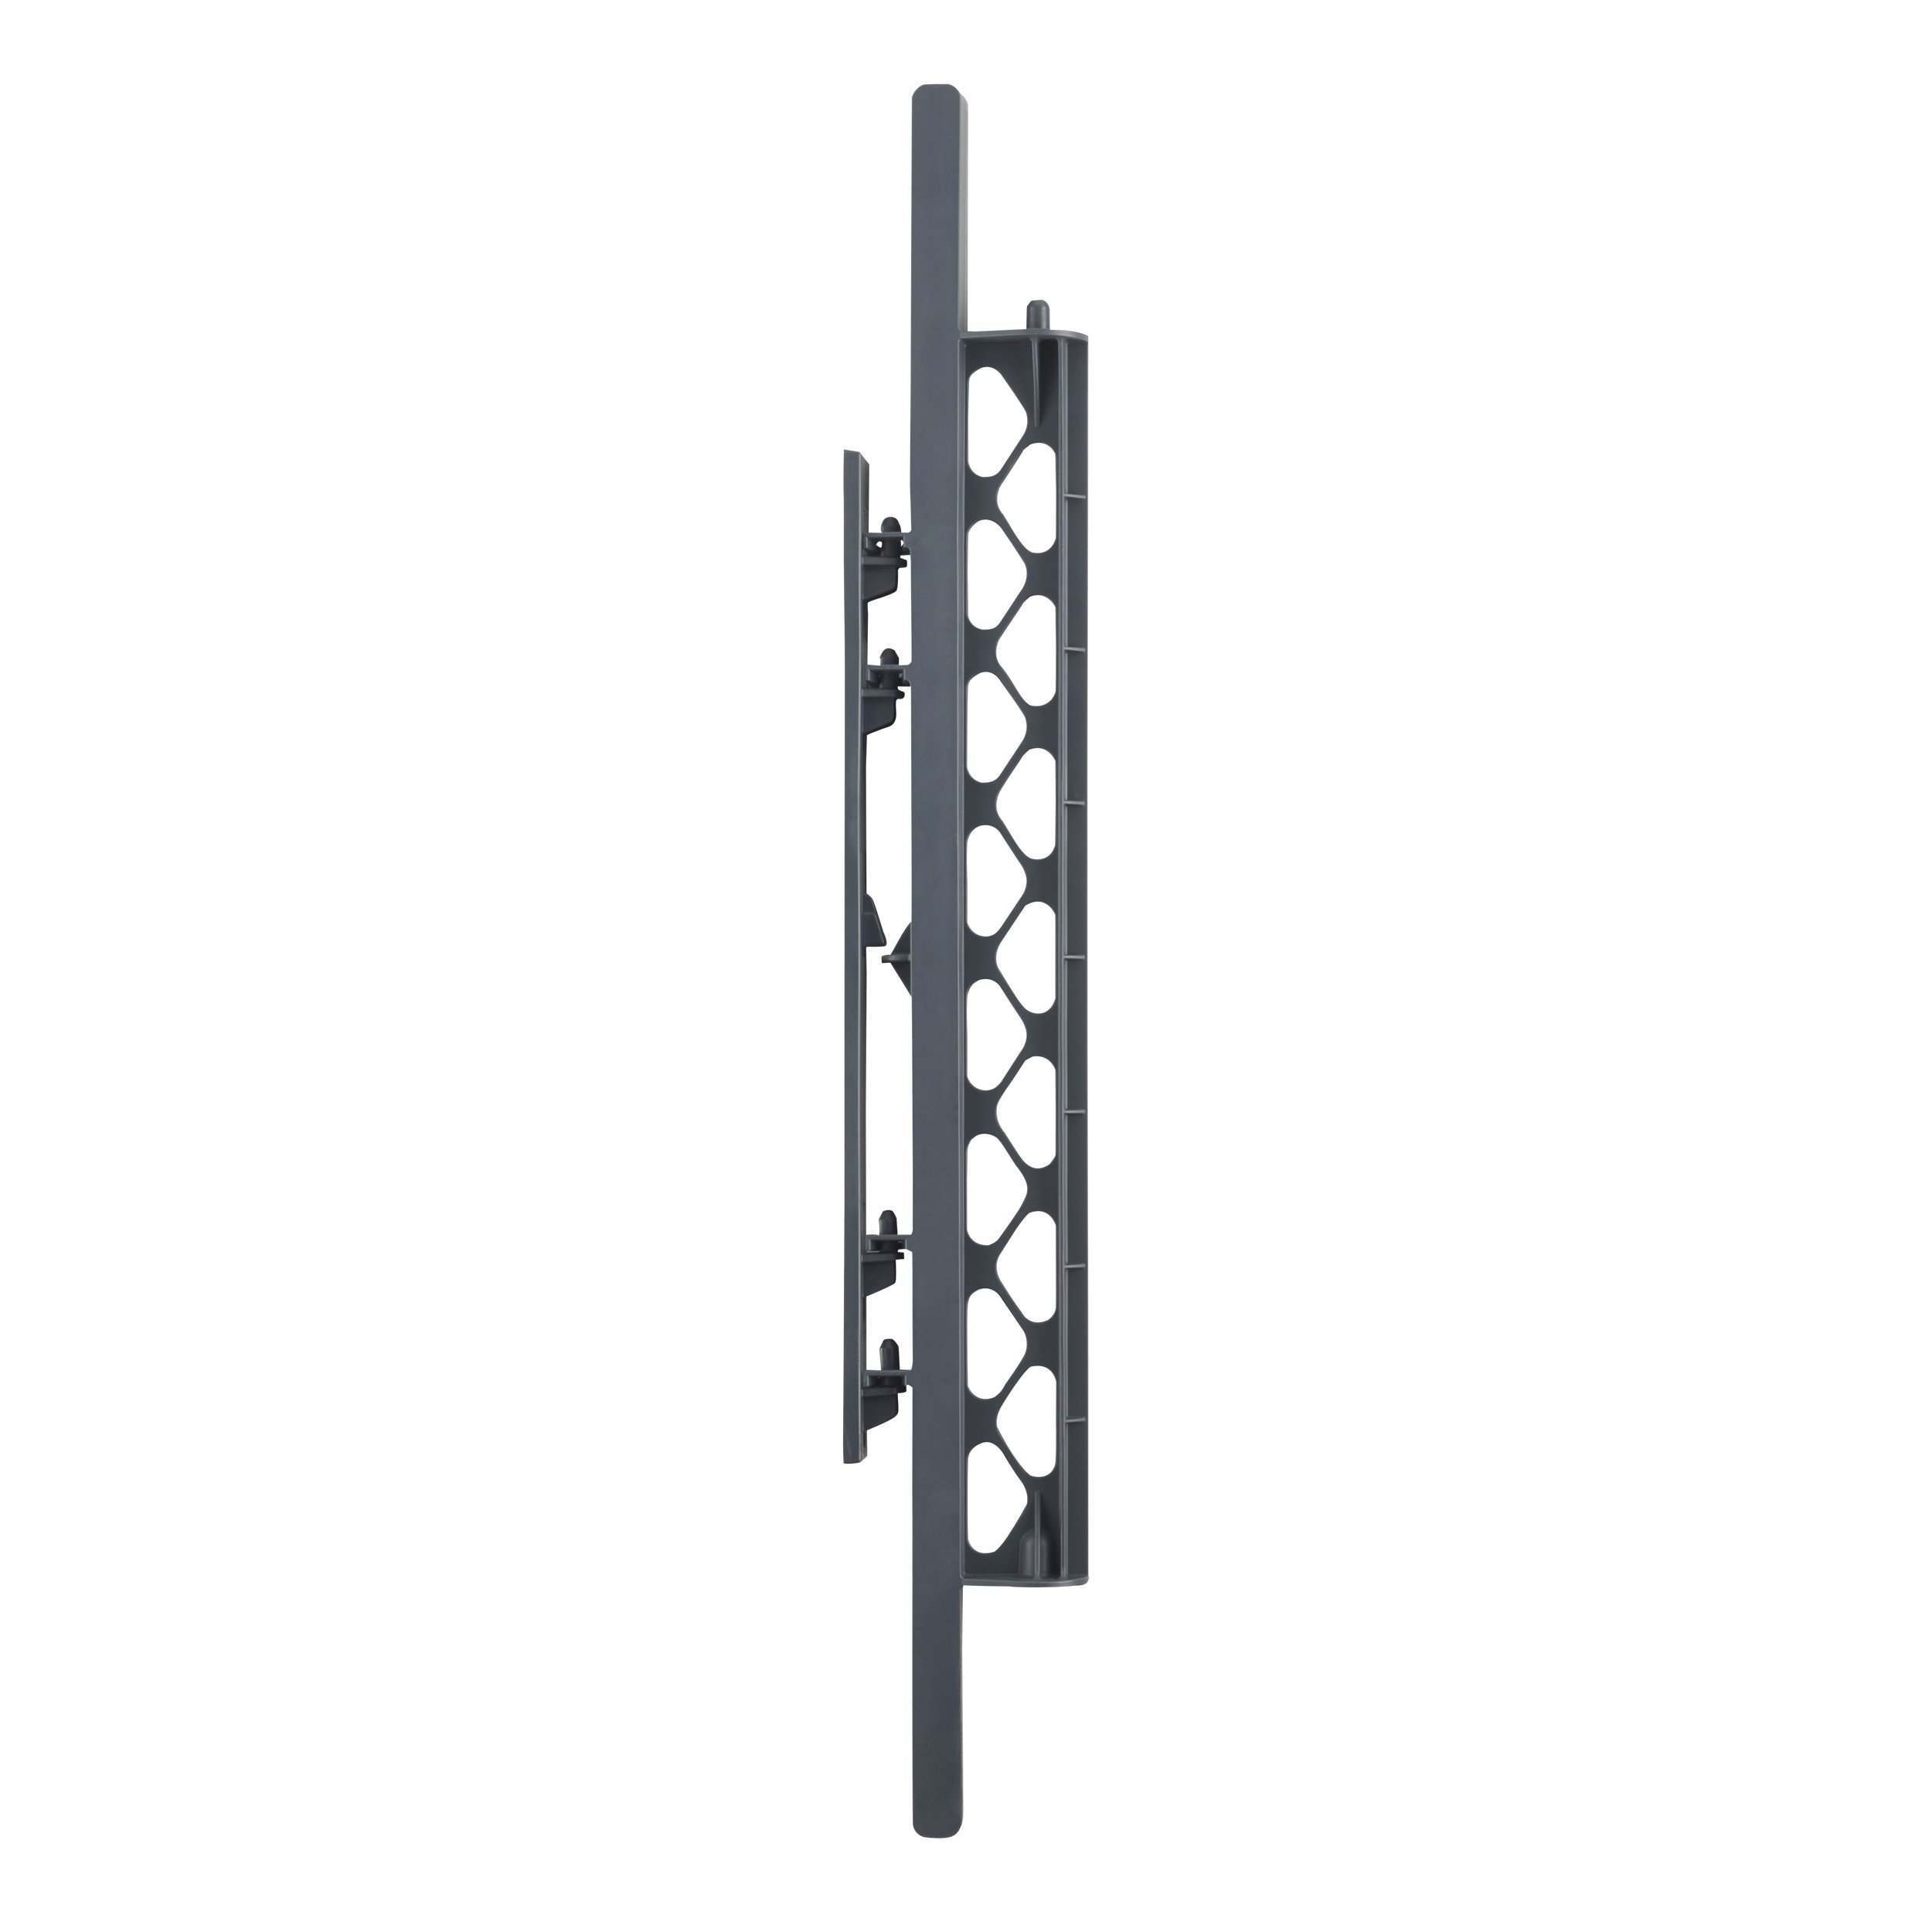 Superyard Wall Mount Kit Quot By North States Hardware To